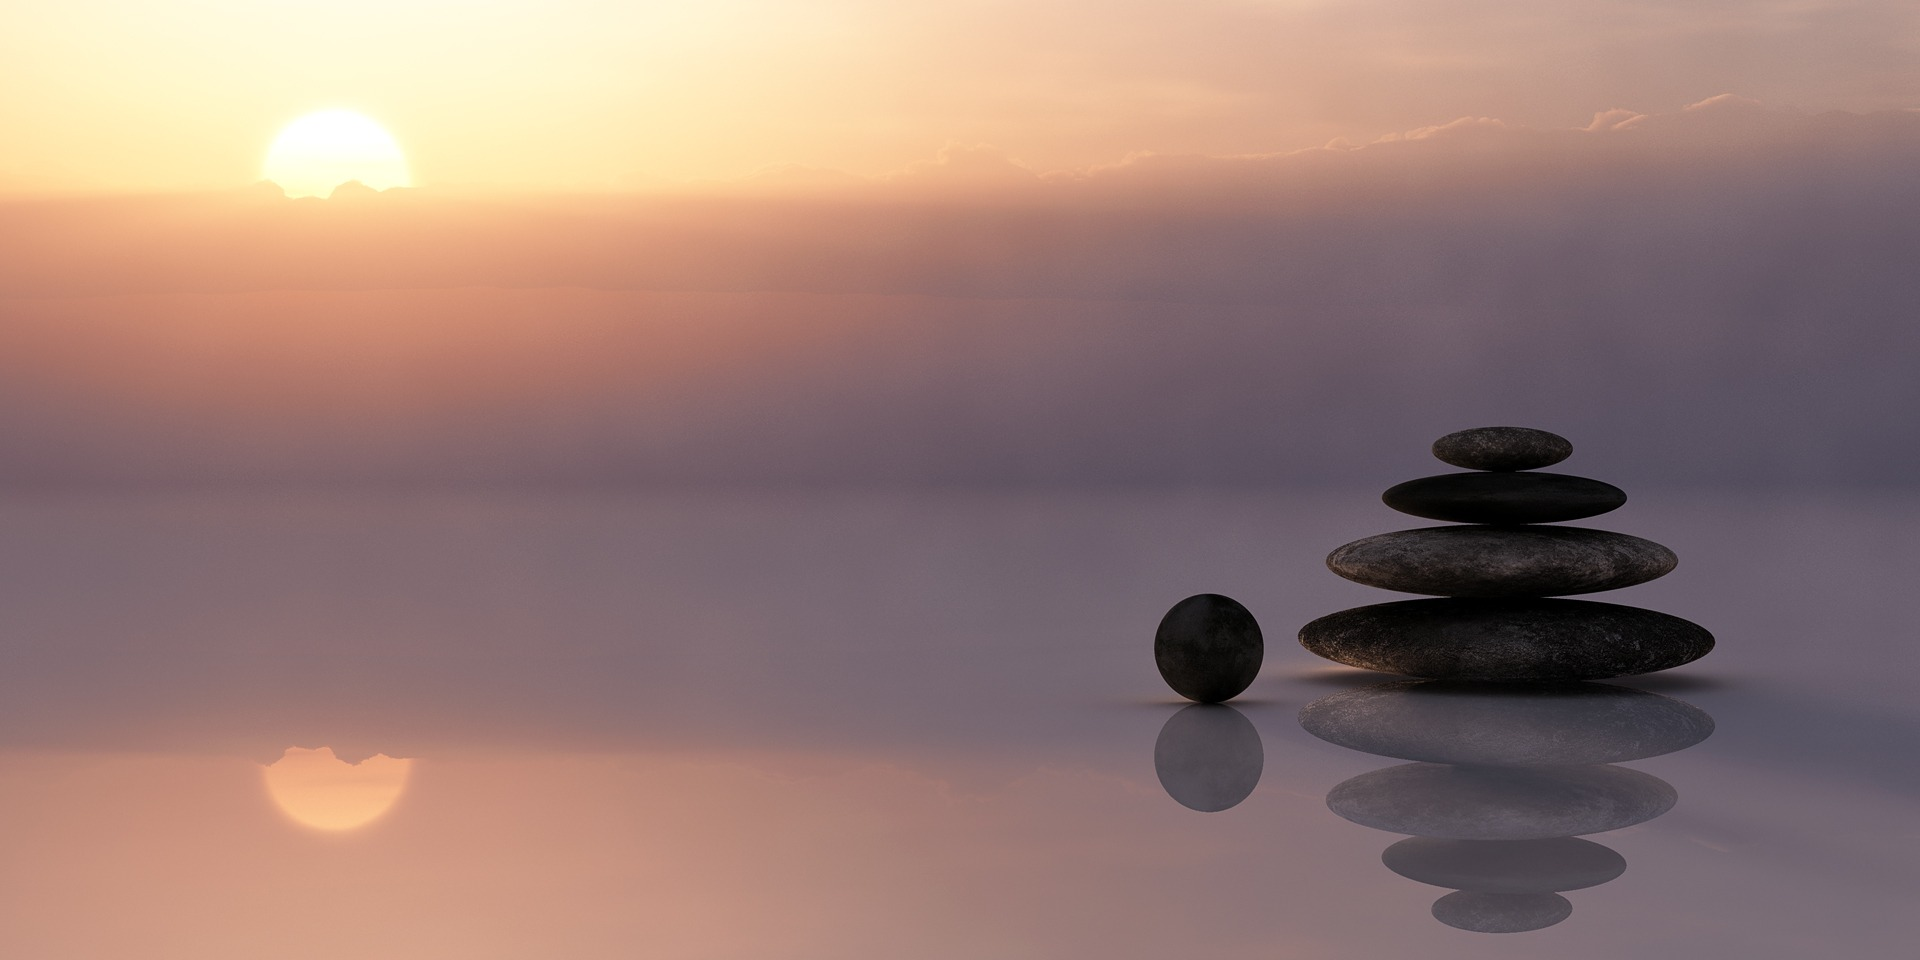 Balancing stones on clear waters